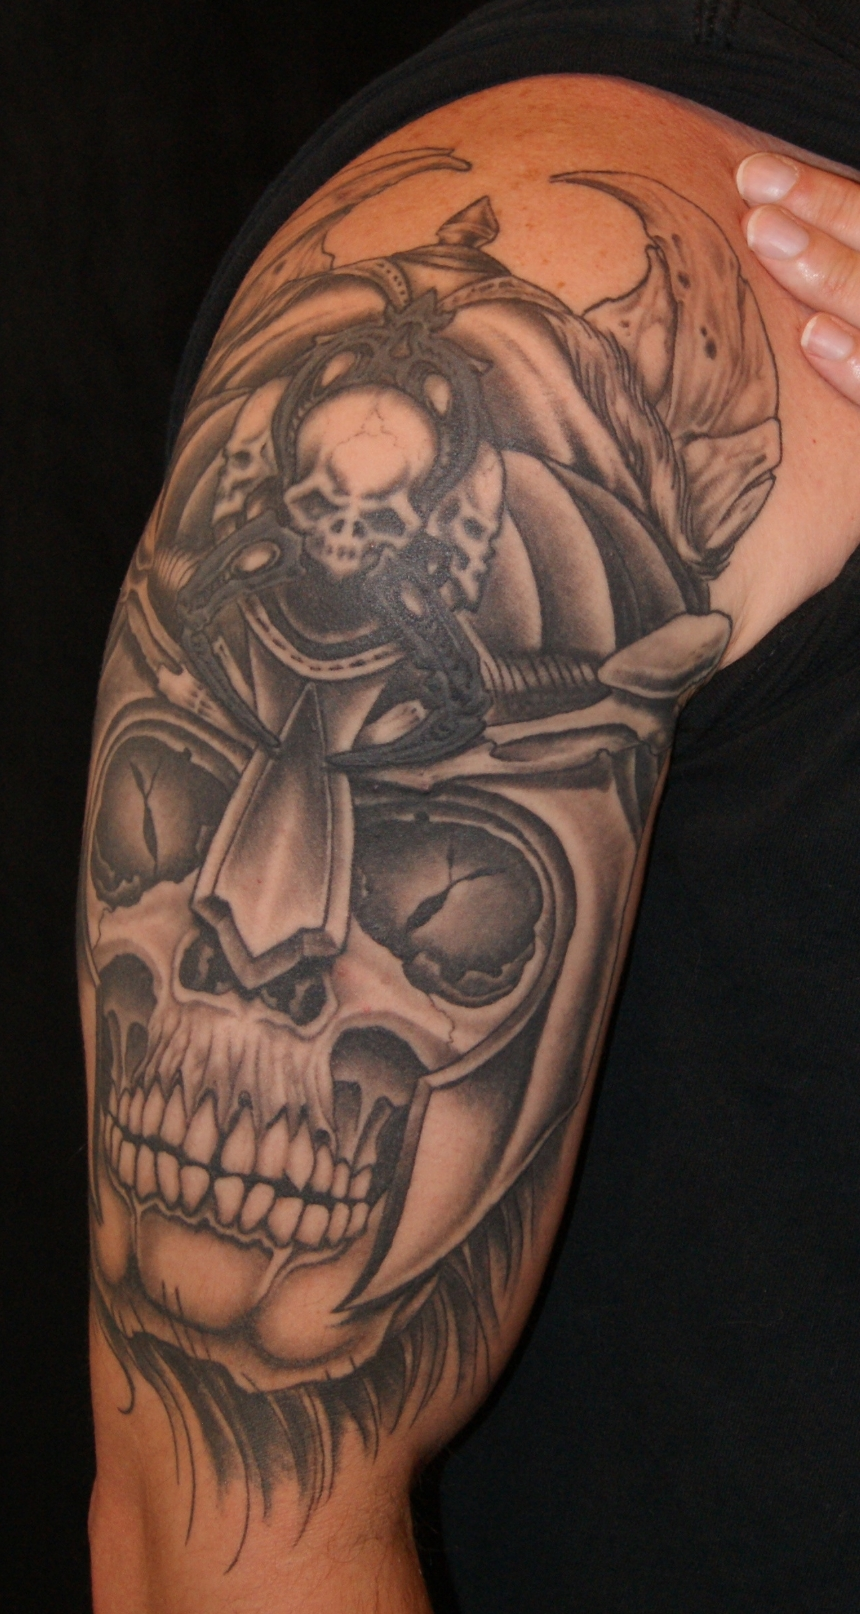 Viking warrior skull tattoo by Anthony Filo